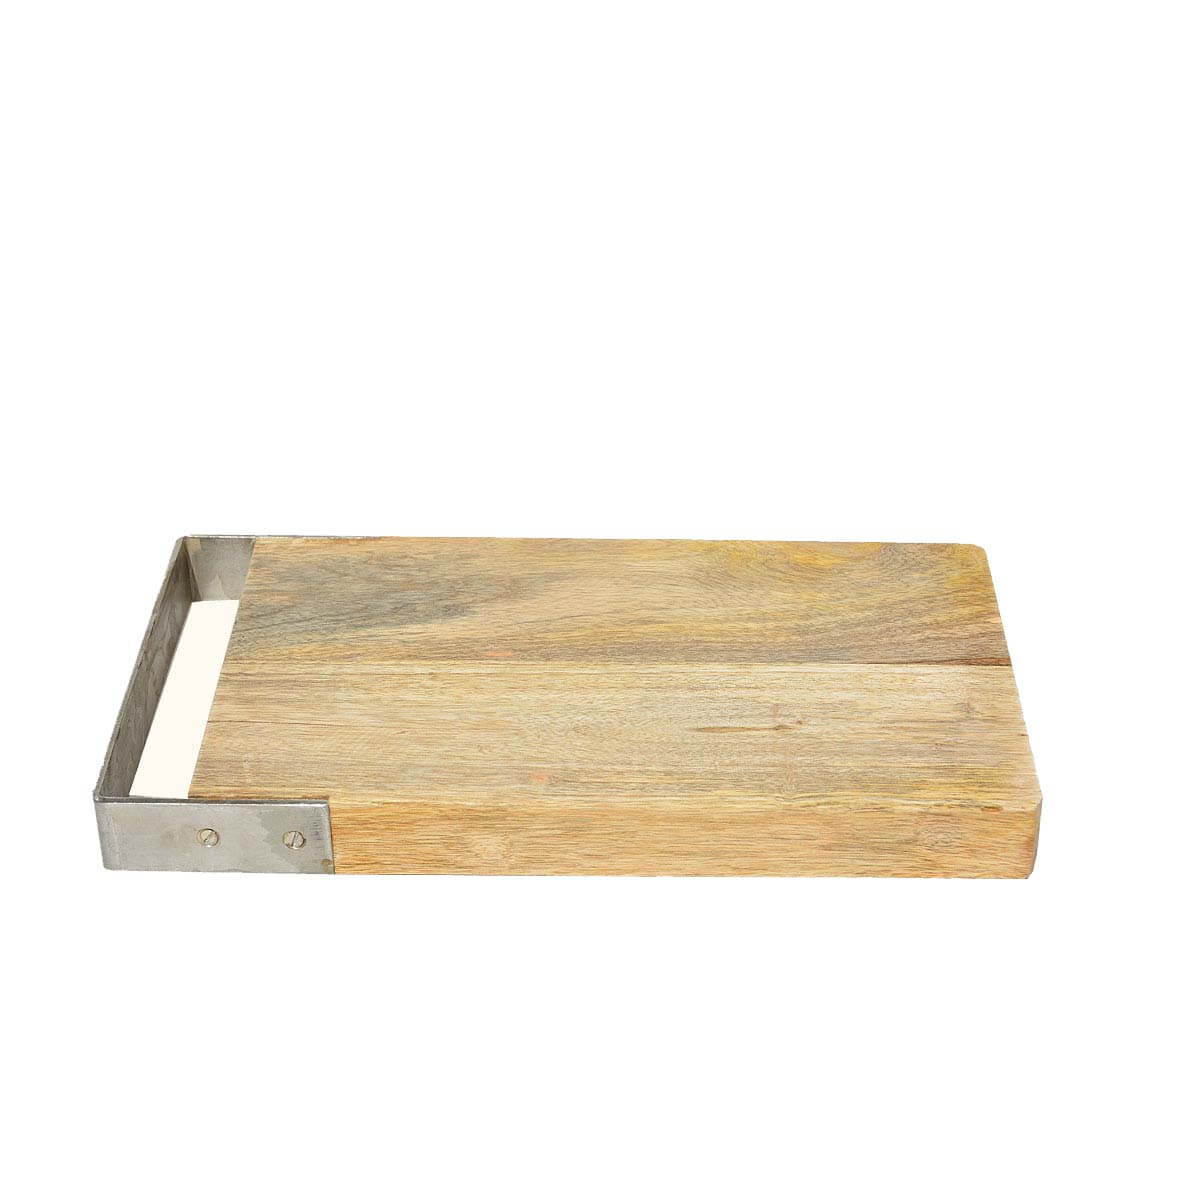 Stainless Steel Handle Mango Wood Kitchen Cutting Board